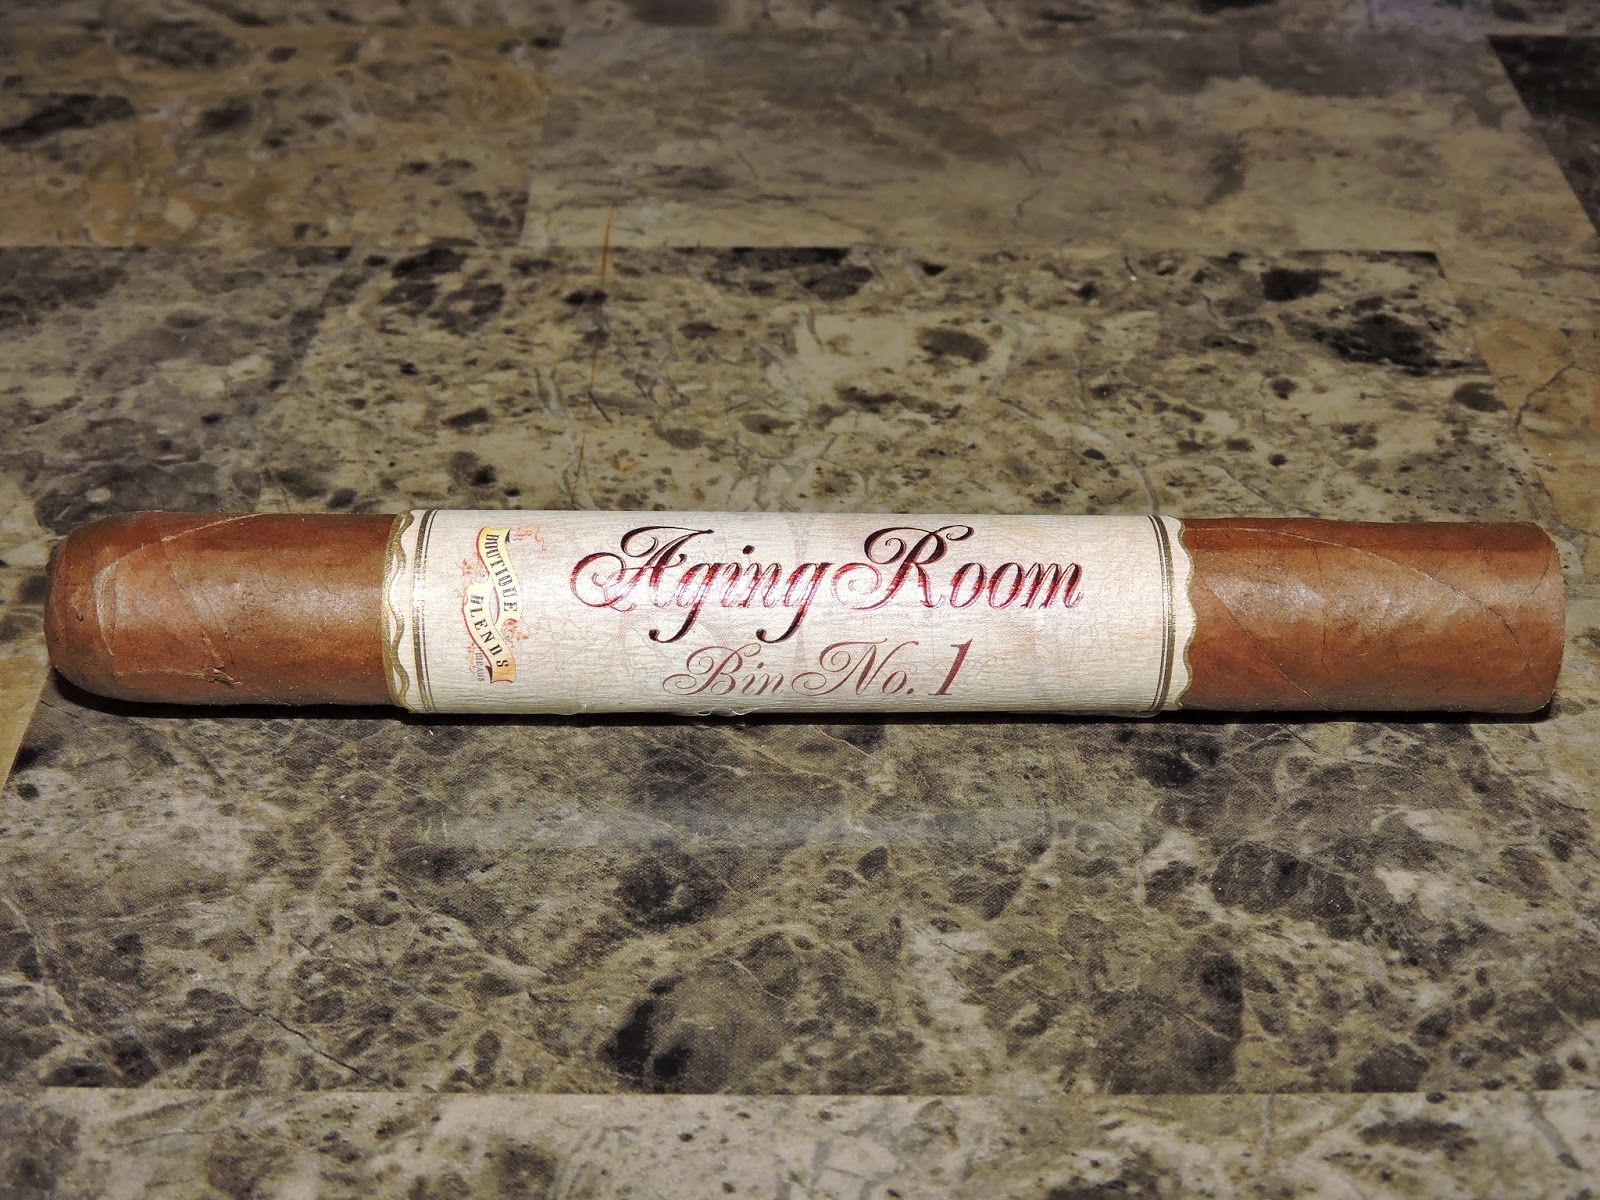 Cigar Review: Aging Room Bin No. 1 by Boutique Blends Cigars